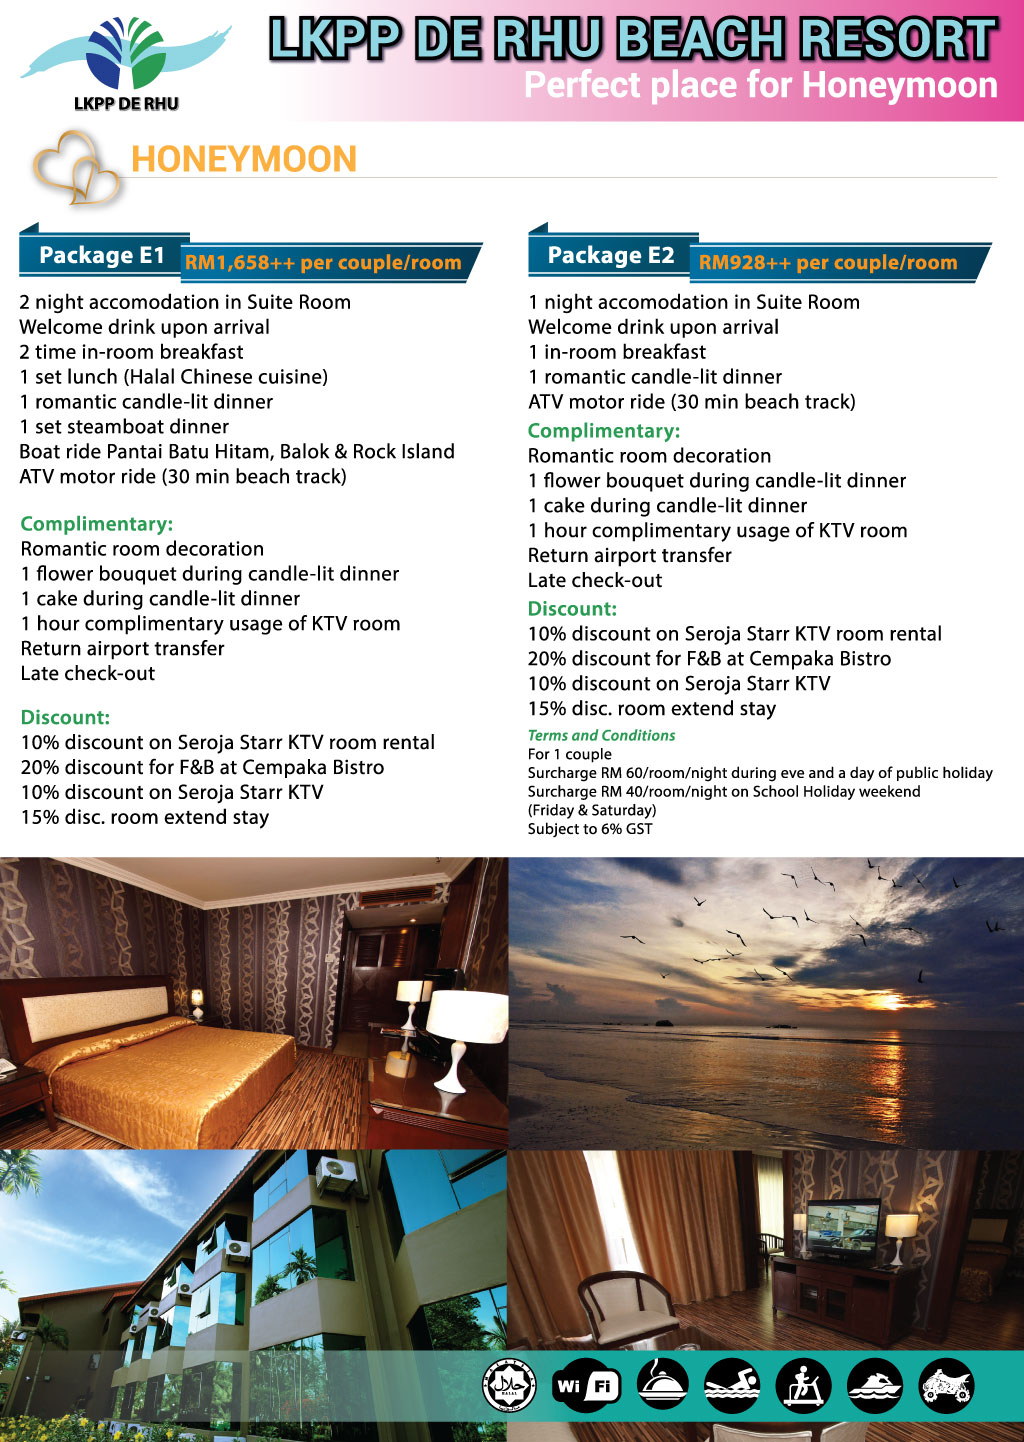 De-Rhu-Beach-Resort-Honeymoon-Package-2016-back-page